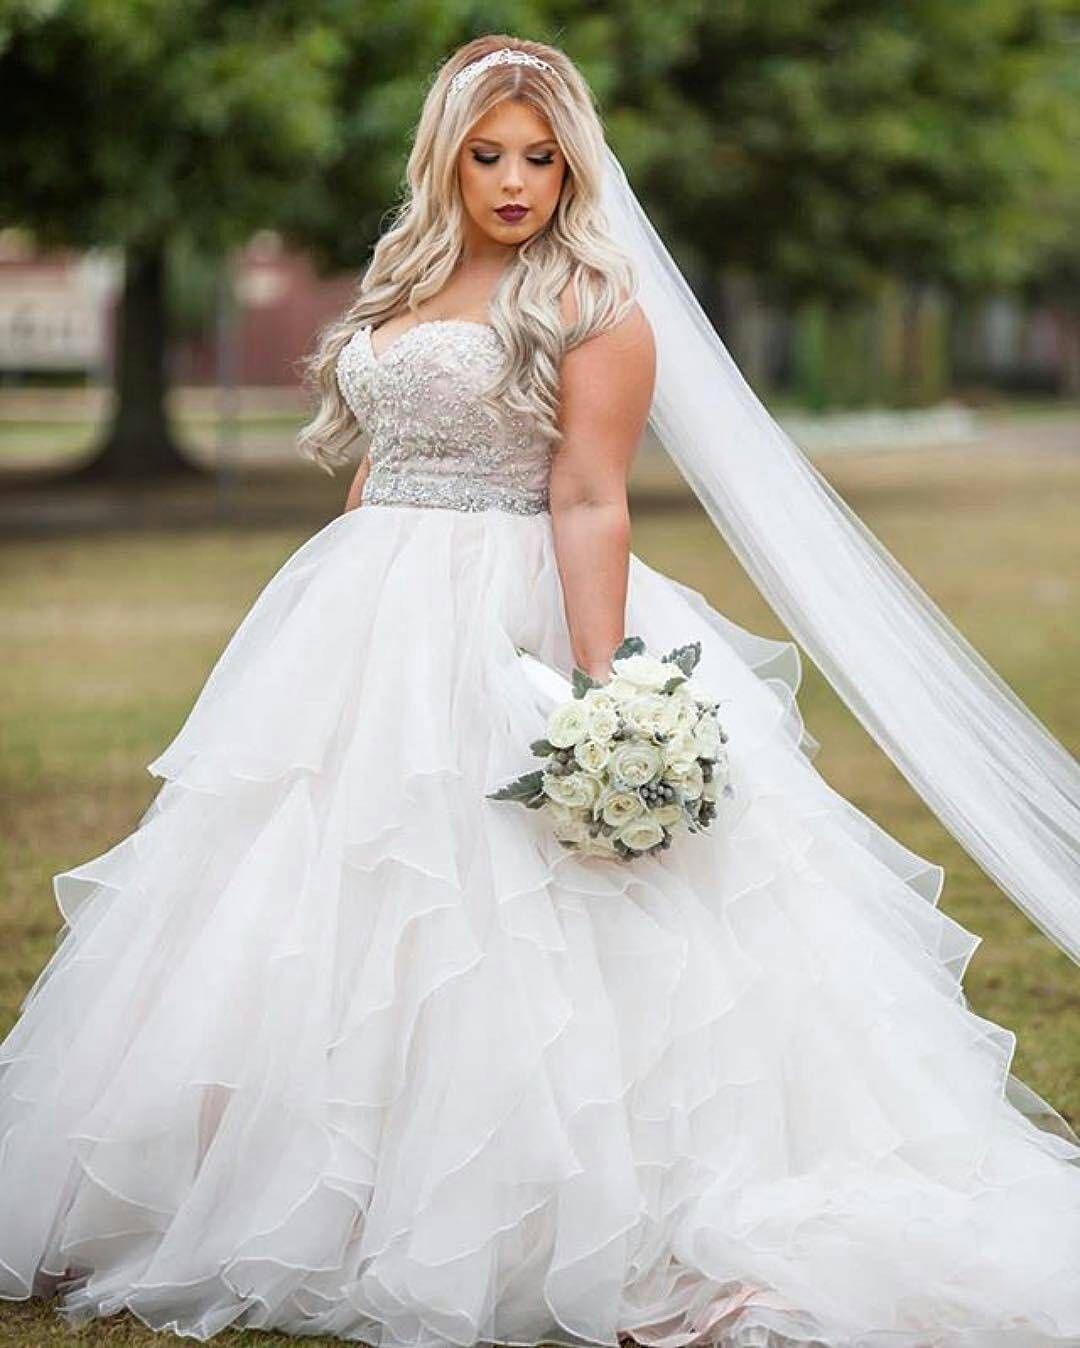 f4152f7de8df7 We are  USA dress  designers who specialize in affordable custom plus size   weddingdresses.